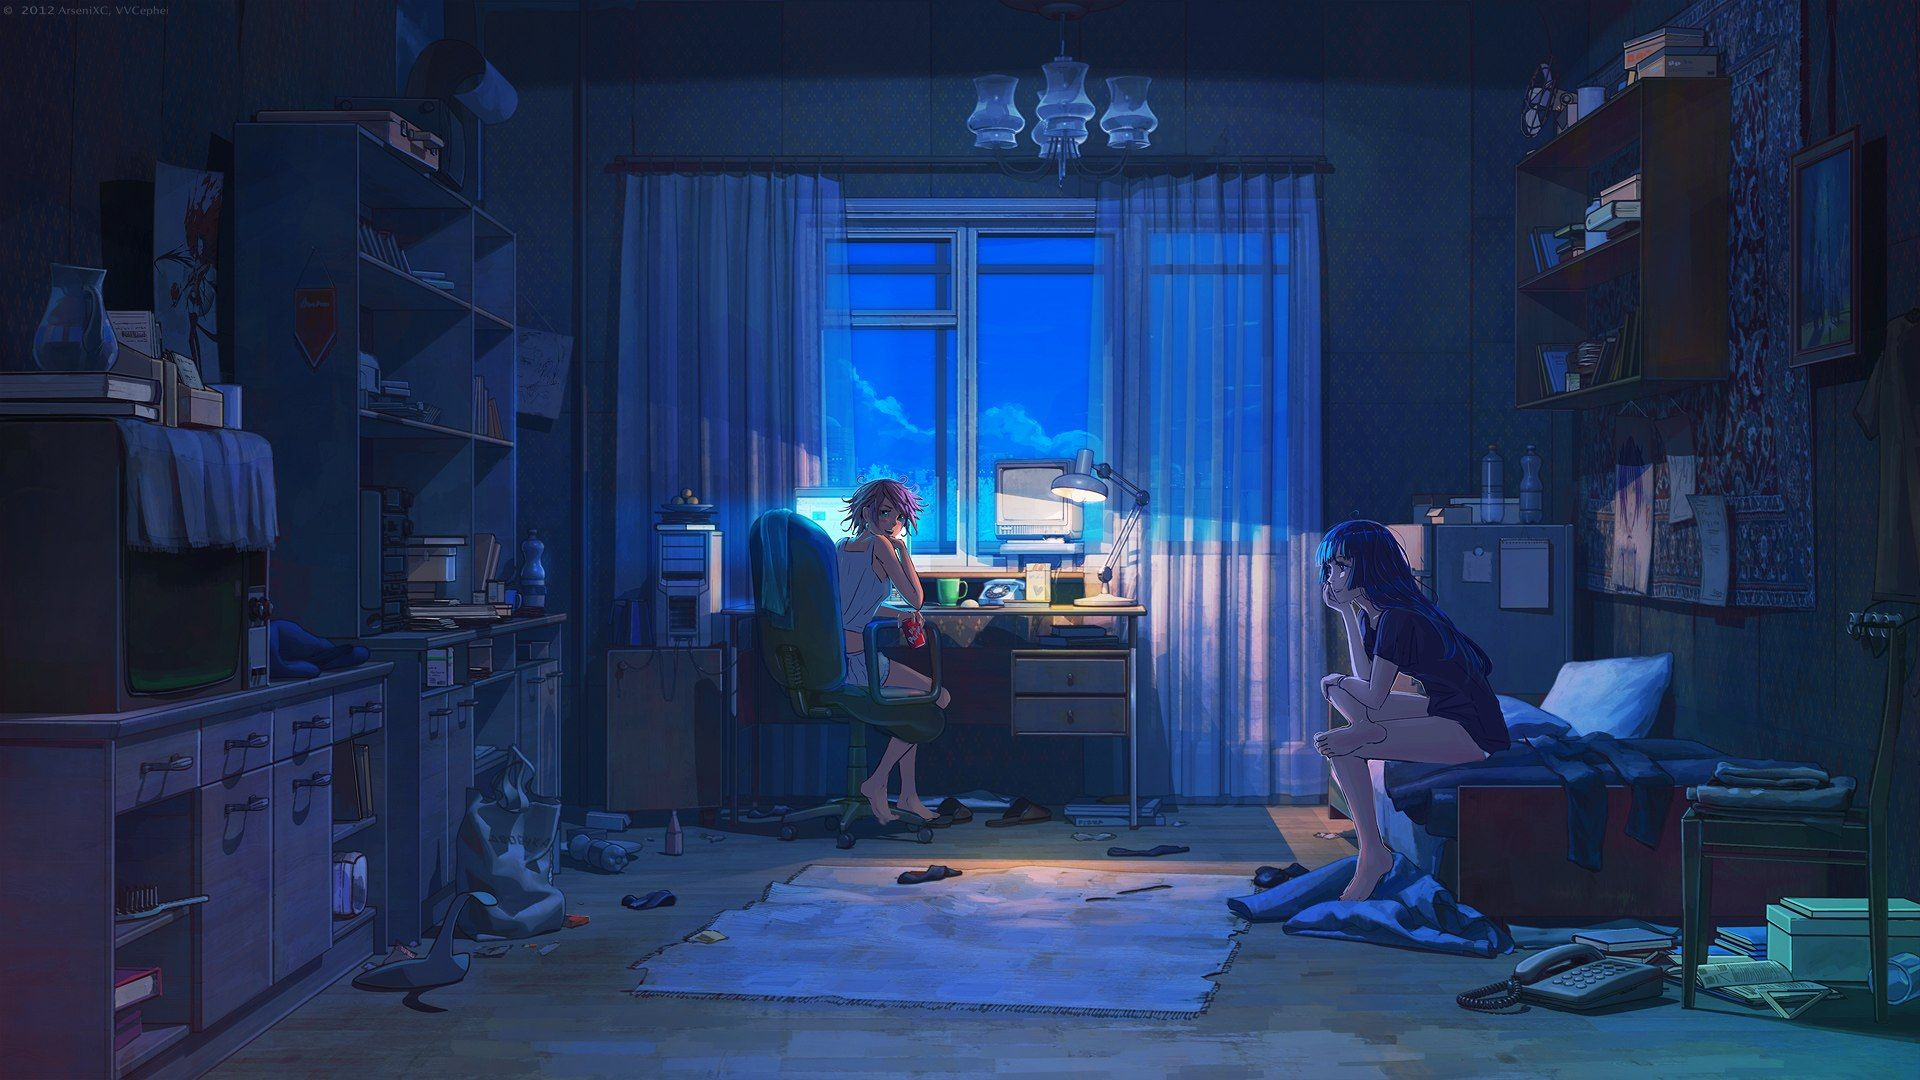 Bedroom House Anime Scenery Background Wallpaper With images 1920x1080